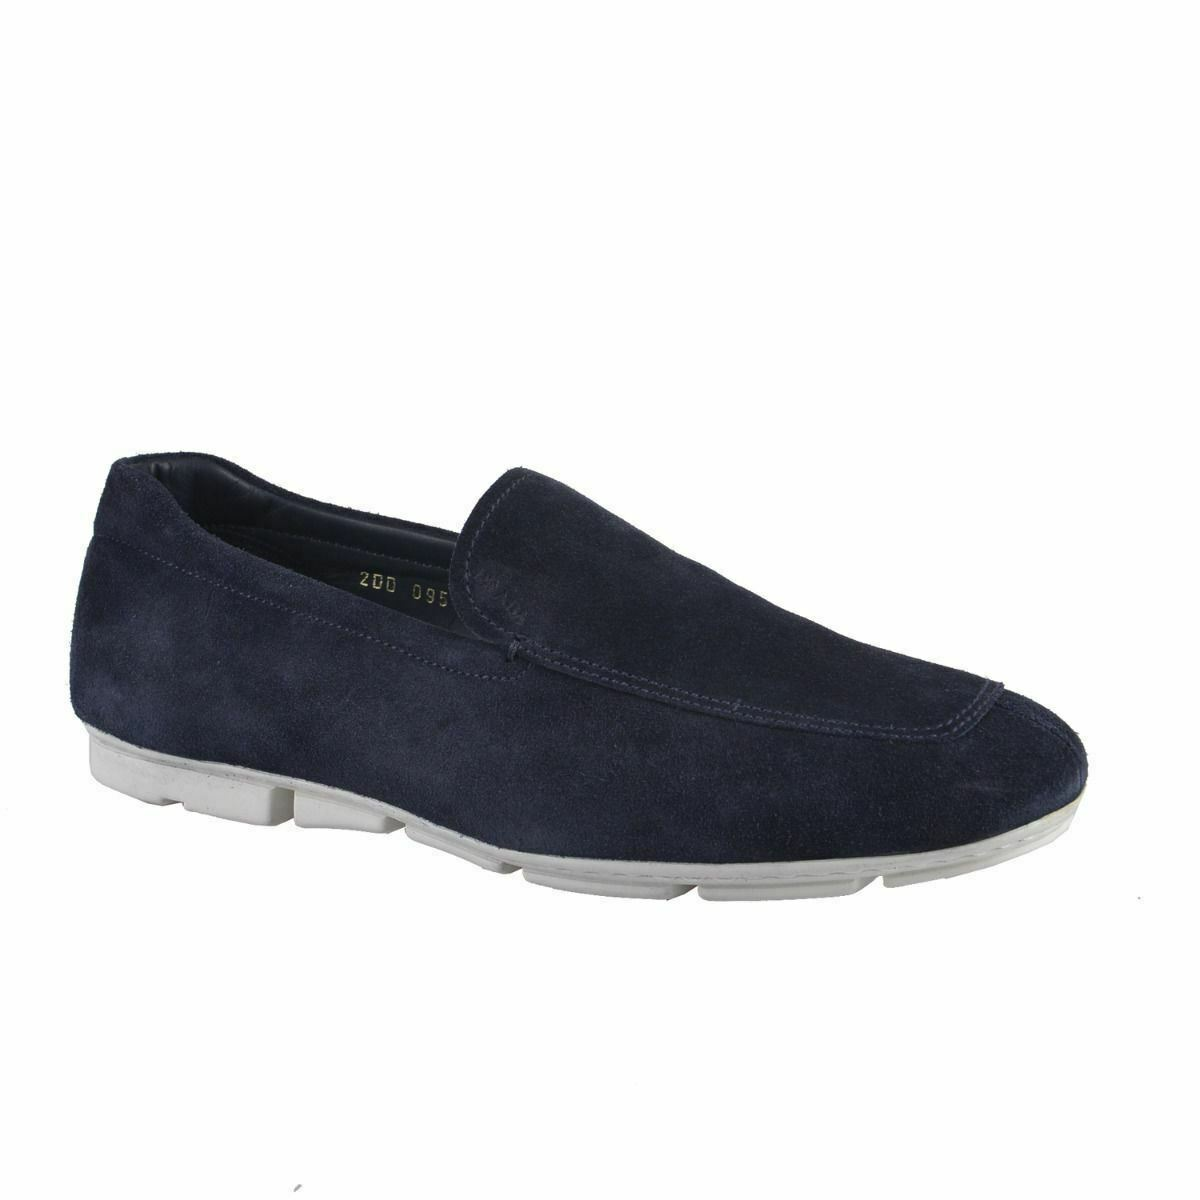 Prada Men's bluee Suede Leather Loafers shoes US 8.5 IT 41.5